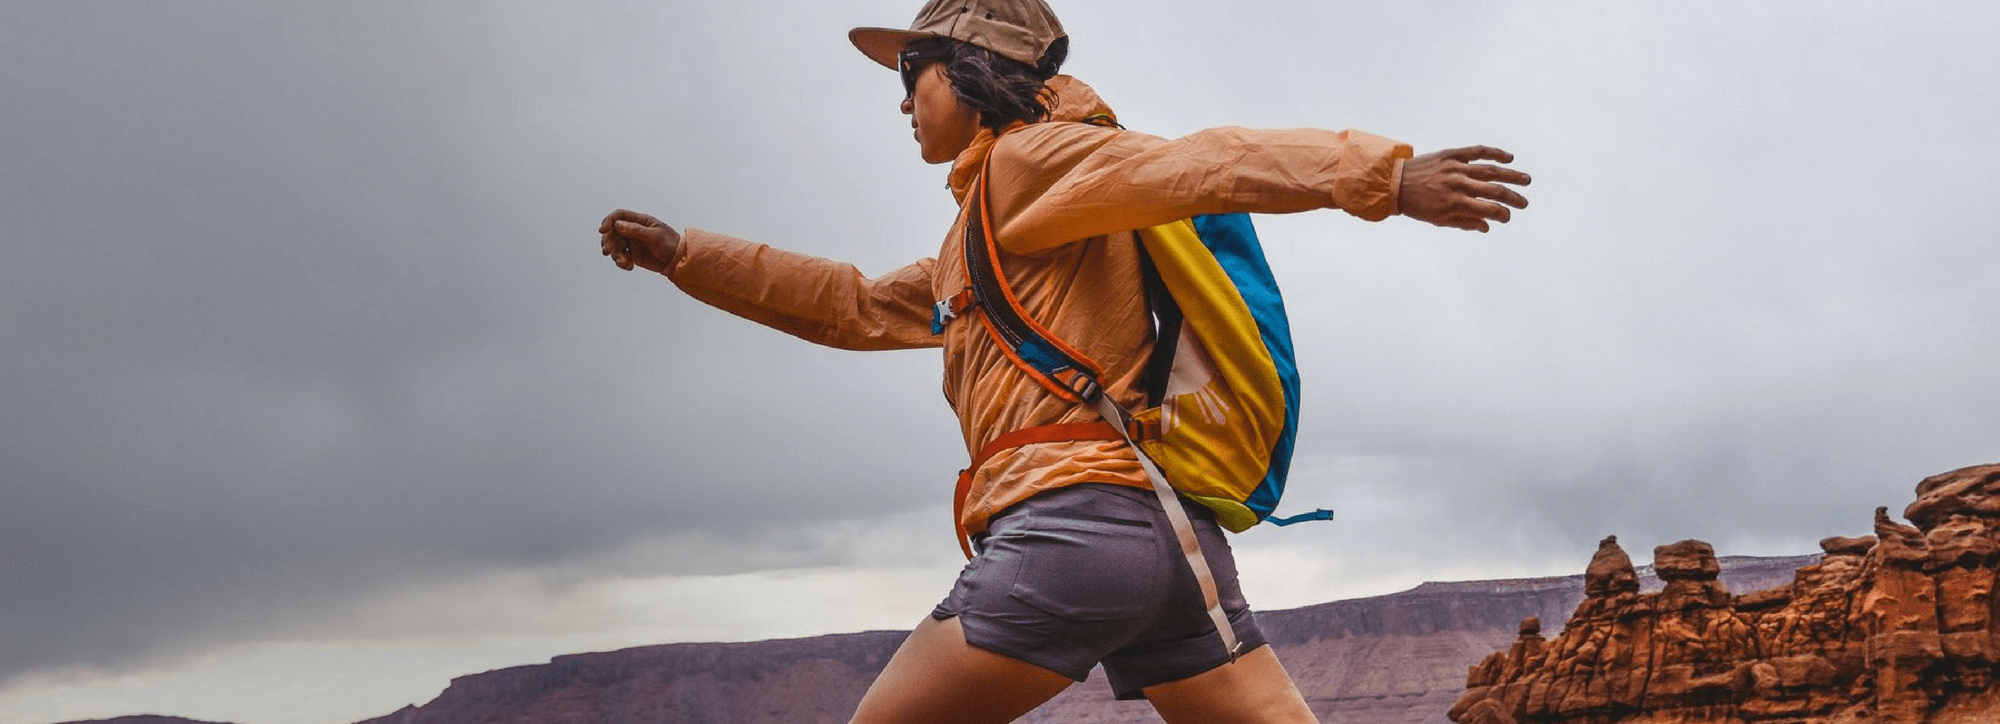 Cotopaxi Backpacks: Alleviating Poverty with Adventure